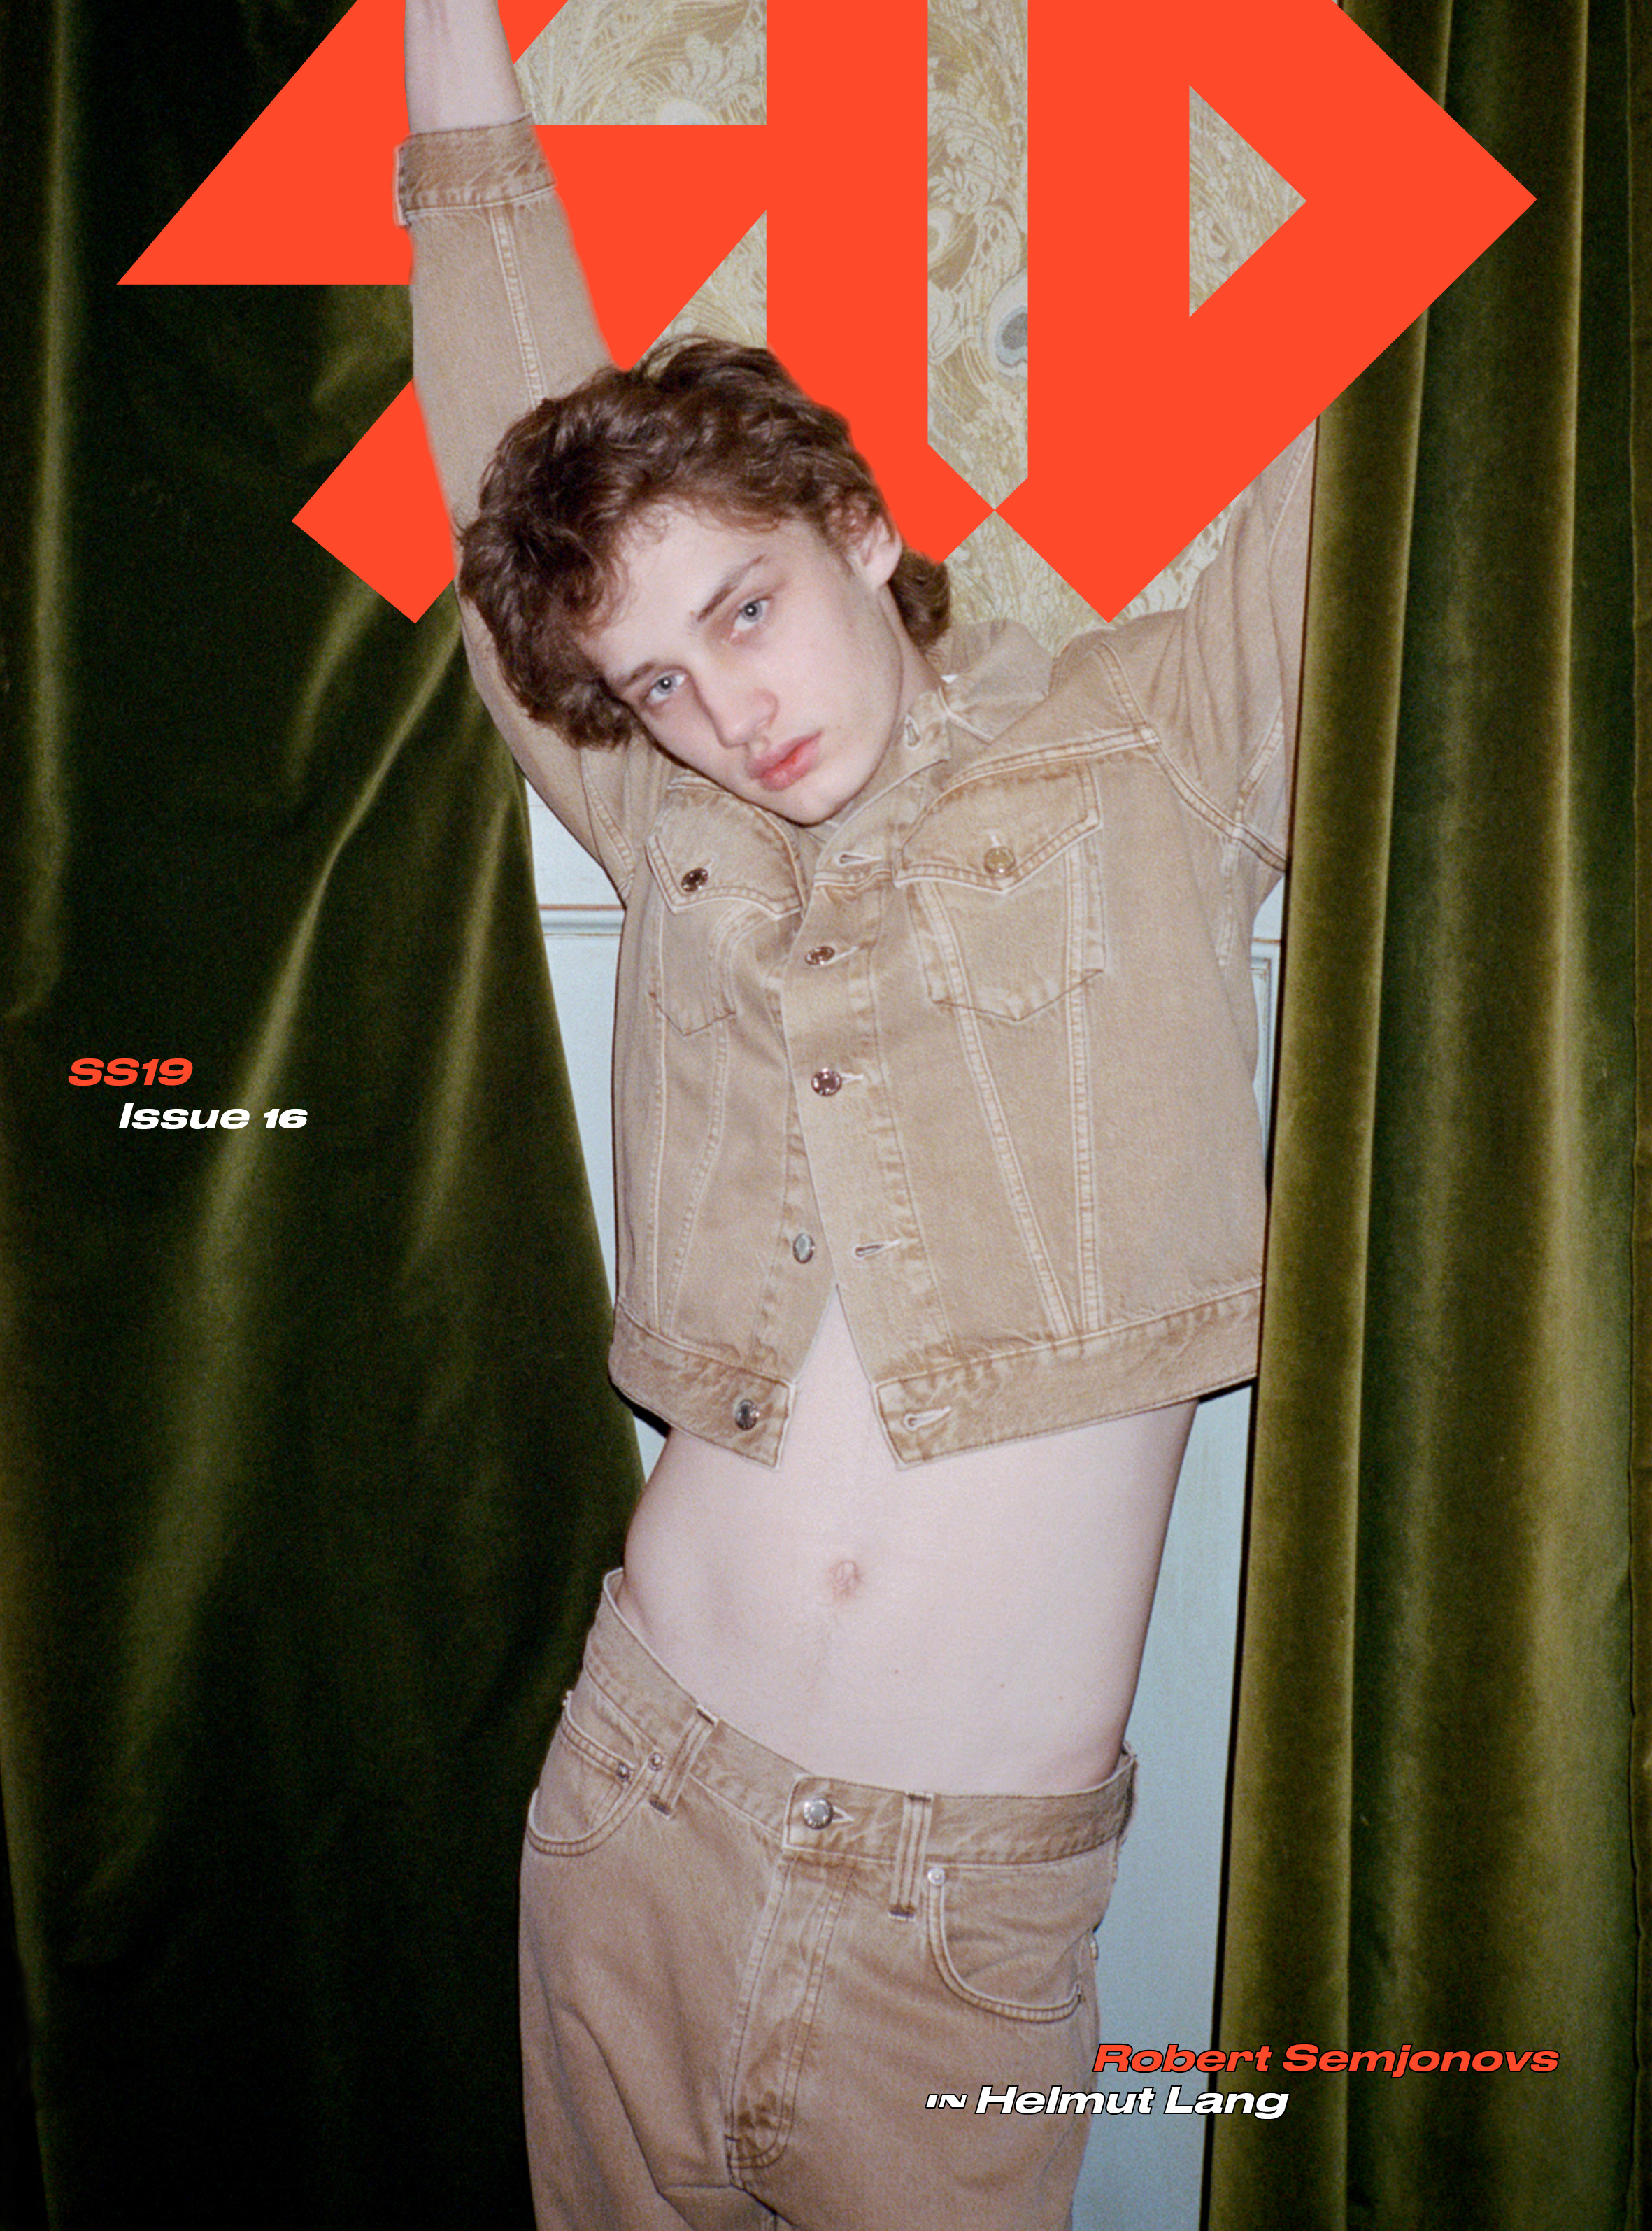 Cover: Robert in Helmut Lang